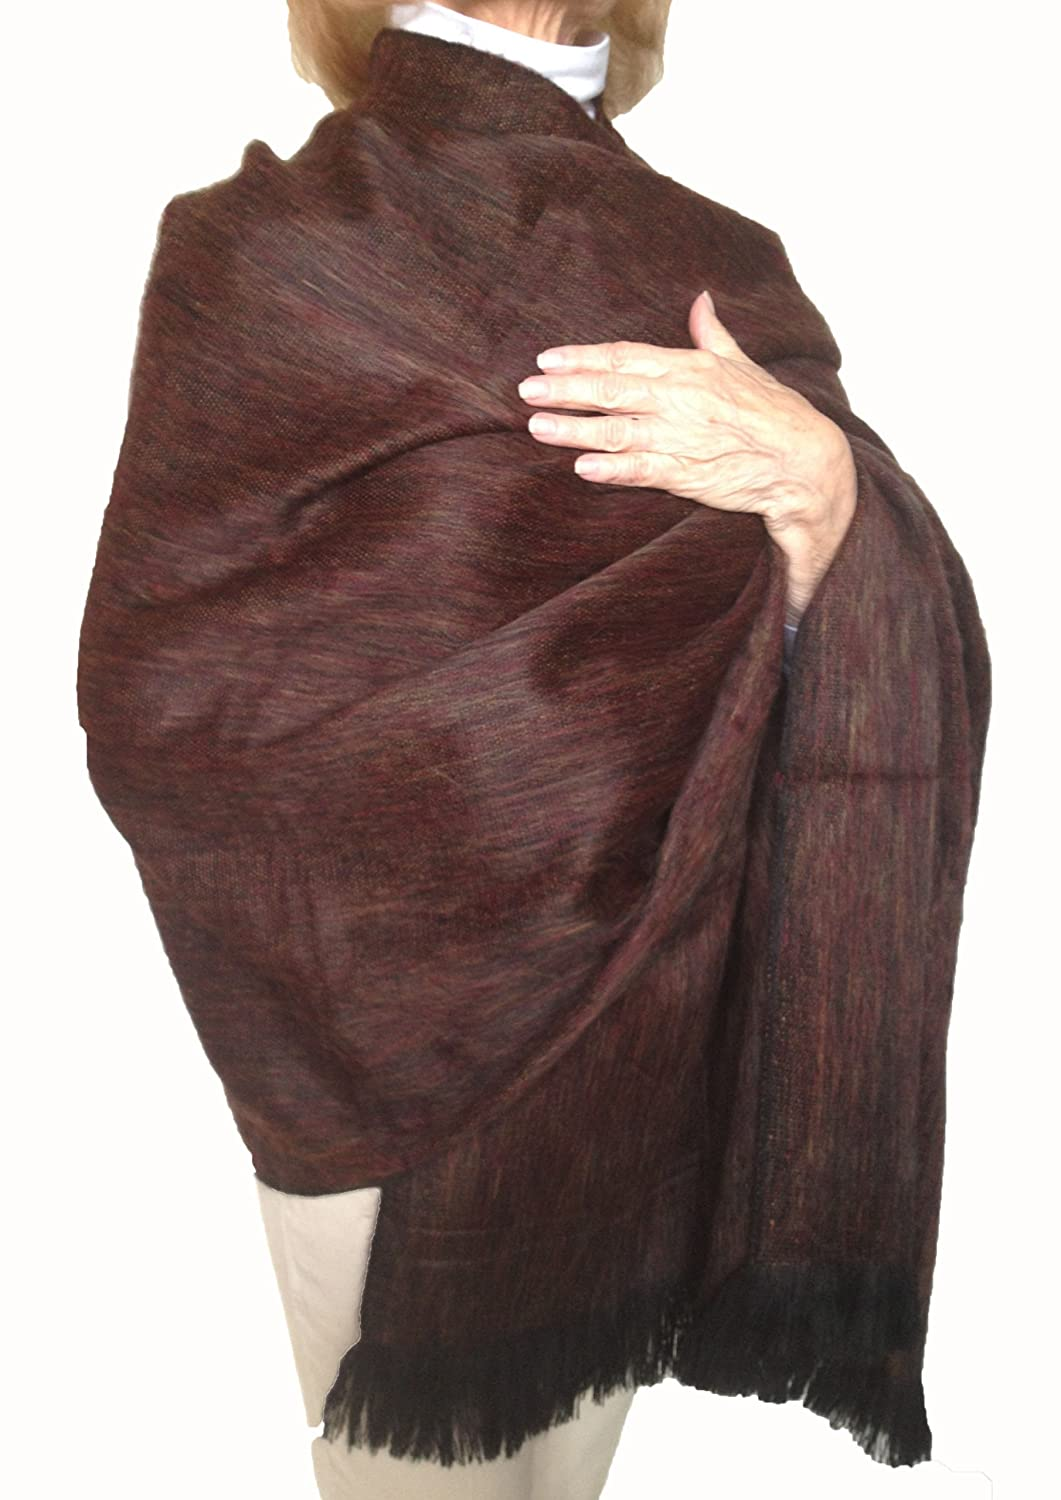 Super Soft Baby Alpaca Wool Reversible Shawl Wrap Cape Wine And Gold Silk Mohair Shawlette Allfreecrochetcom Color At Amazon Womens Clothing Store Pashmina Shawls